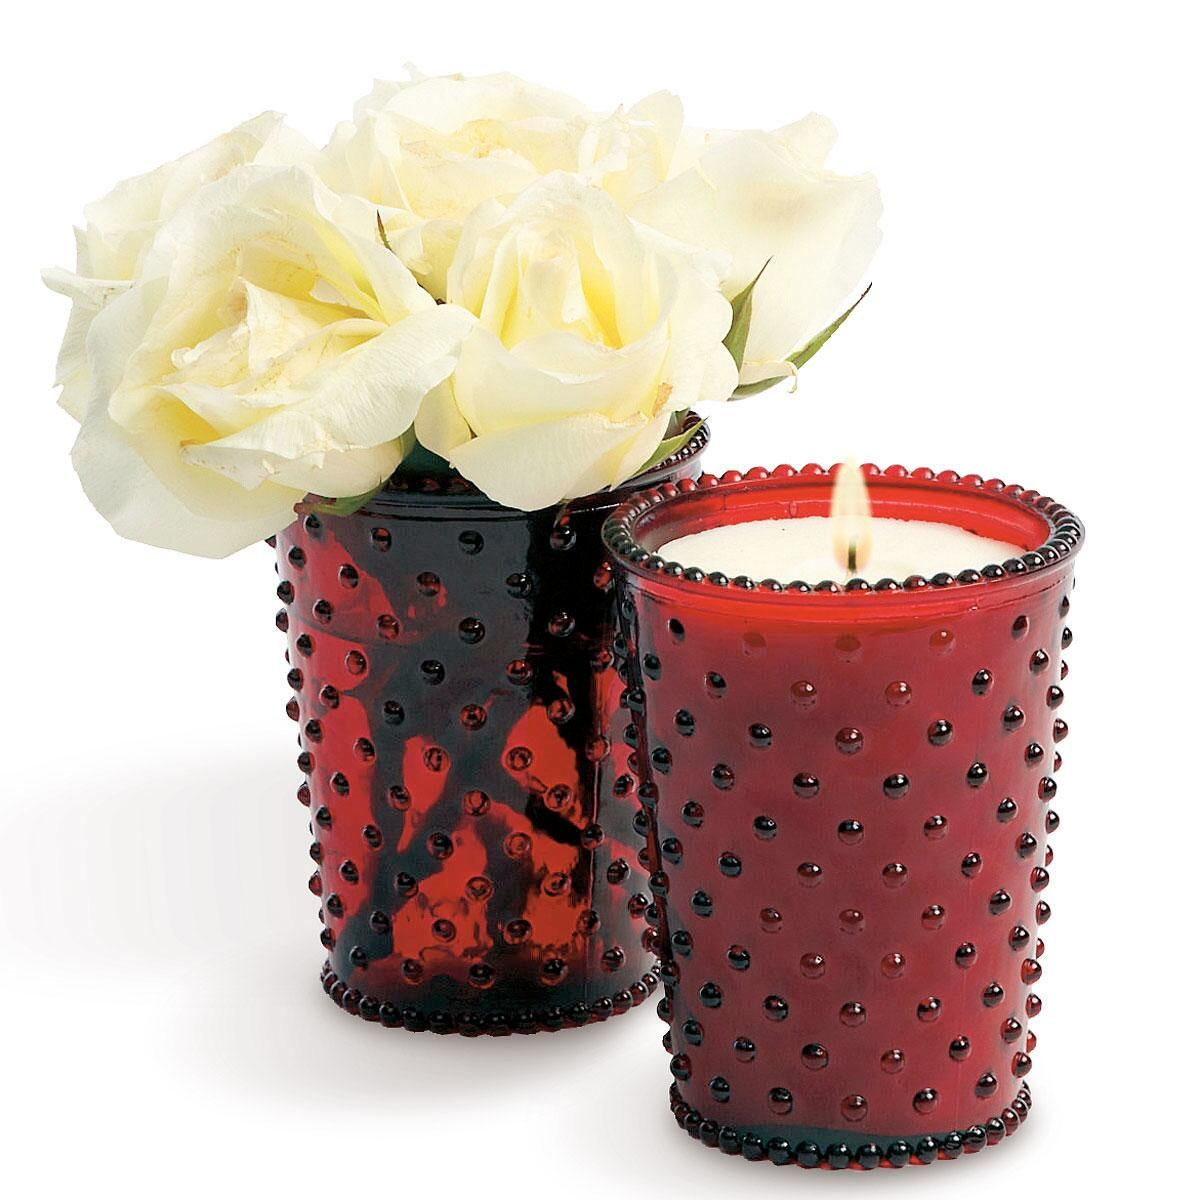 Hobnail Glass Candle by Simpatico